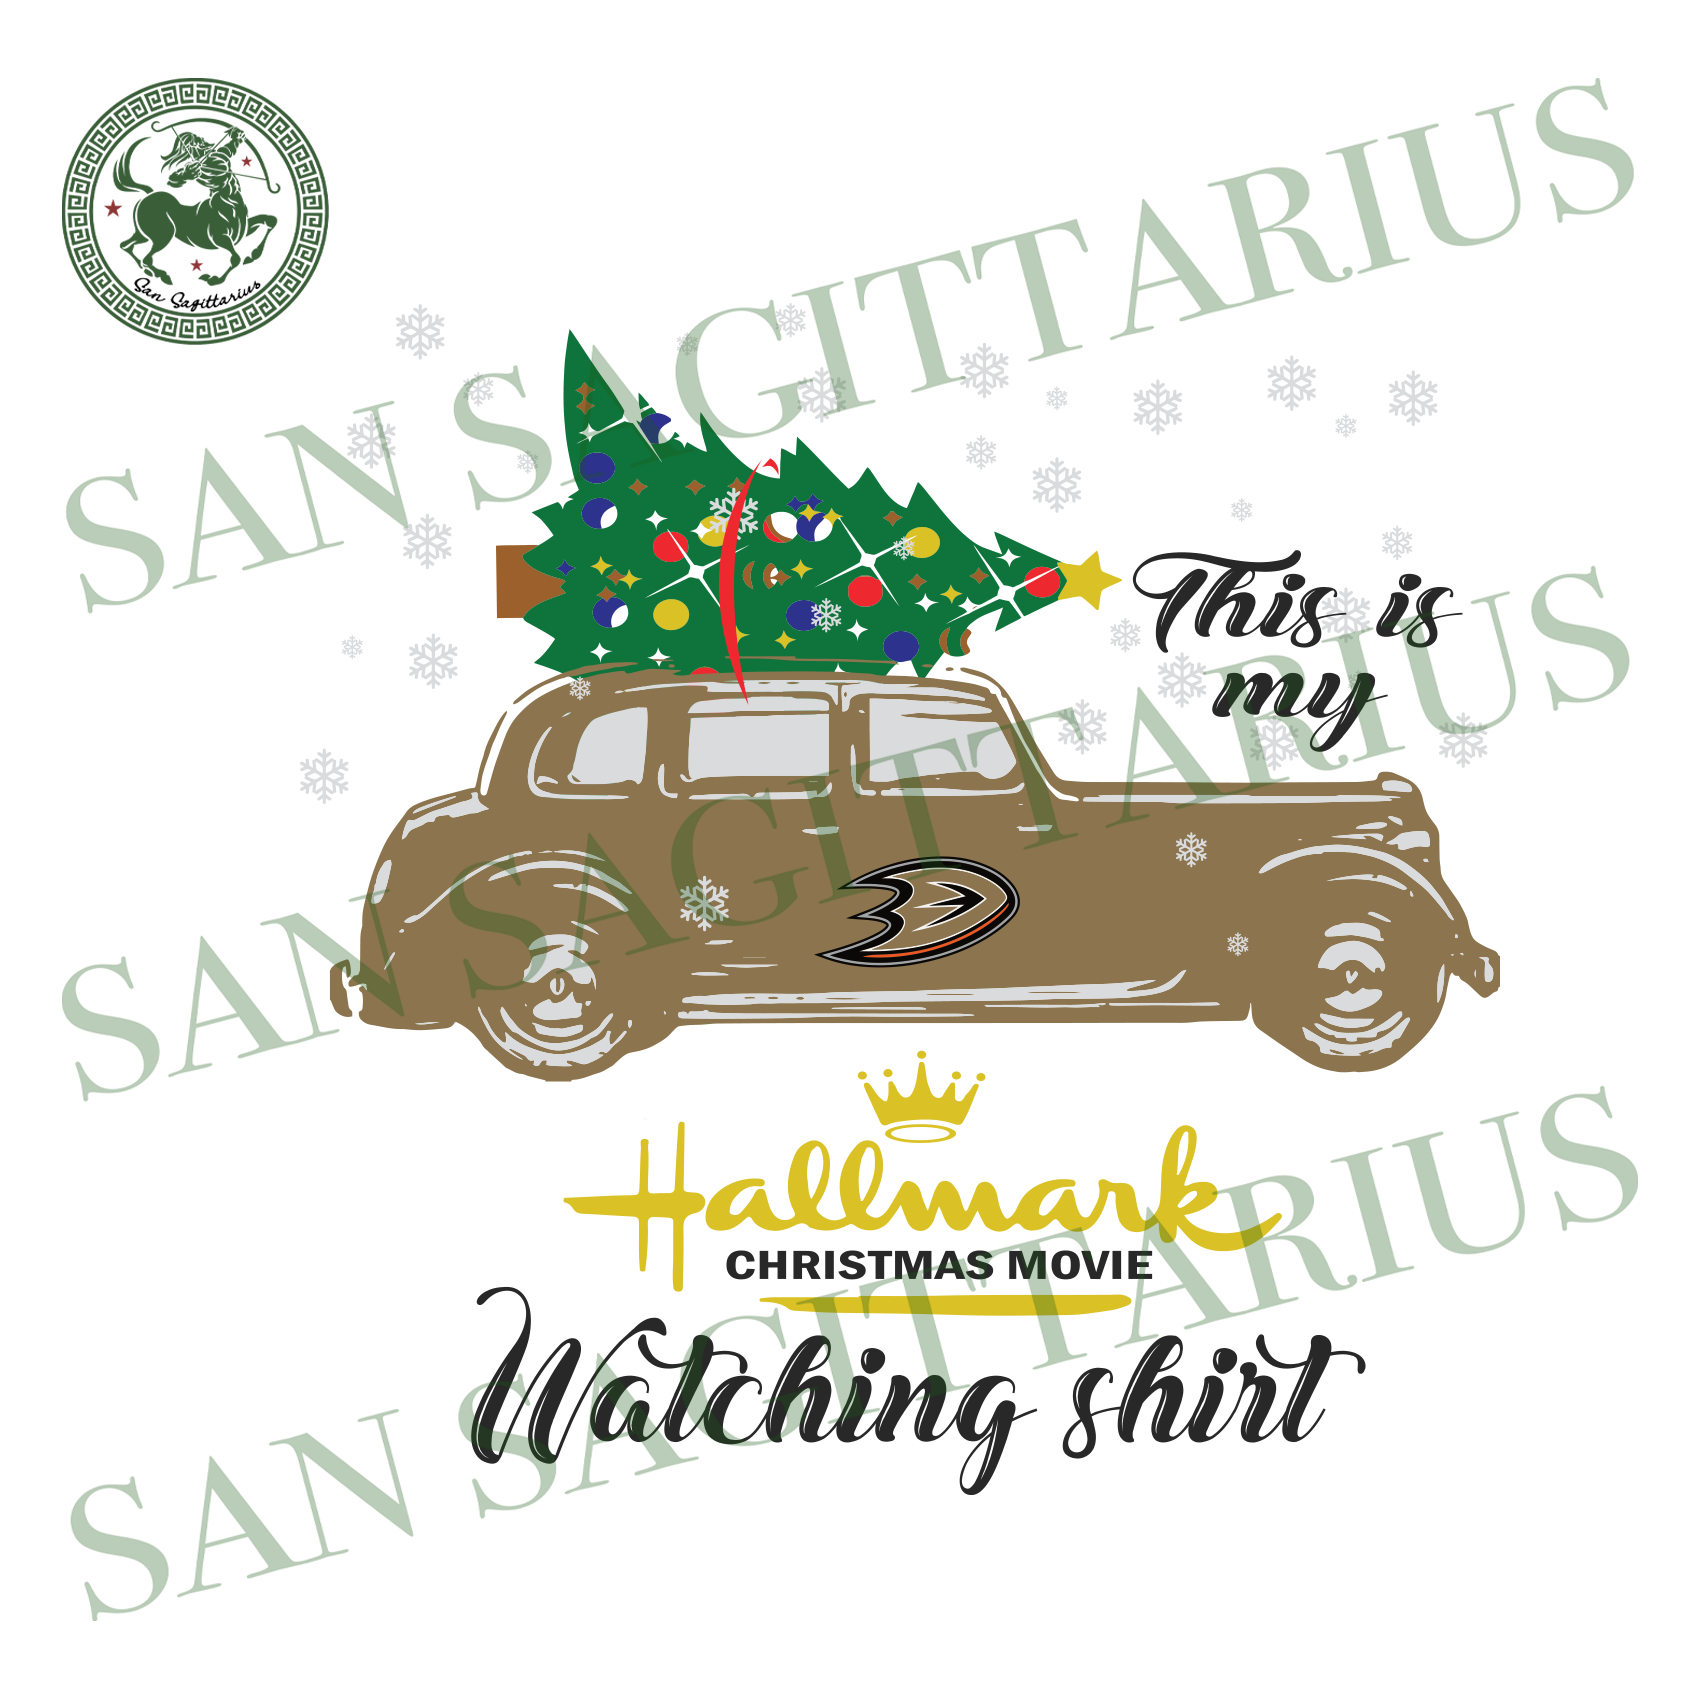 Anaheim Ducks This Is My Hallmark Christmas Movie Watching Shirt, Sport Svg, Christmas Svg, Anaheim Ducks Svg, NHL Sport Svg, Anaheim Ducks NHL Svg, Anaheim Ducks NHL Gift, Hockey Svg